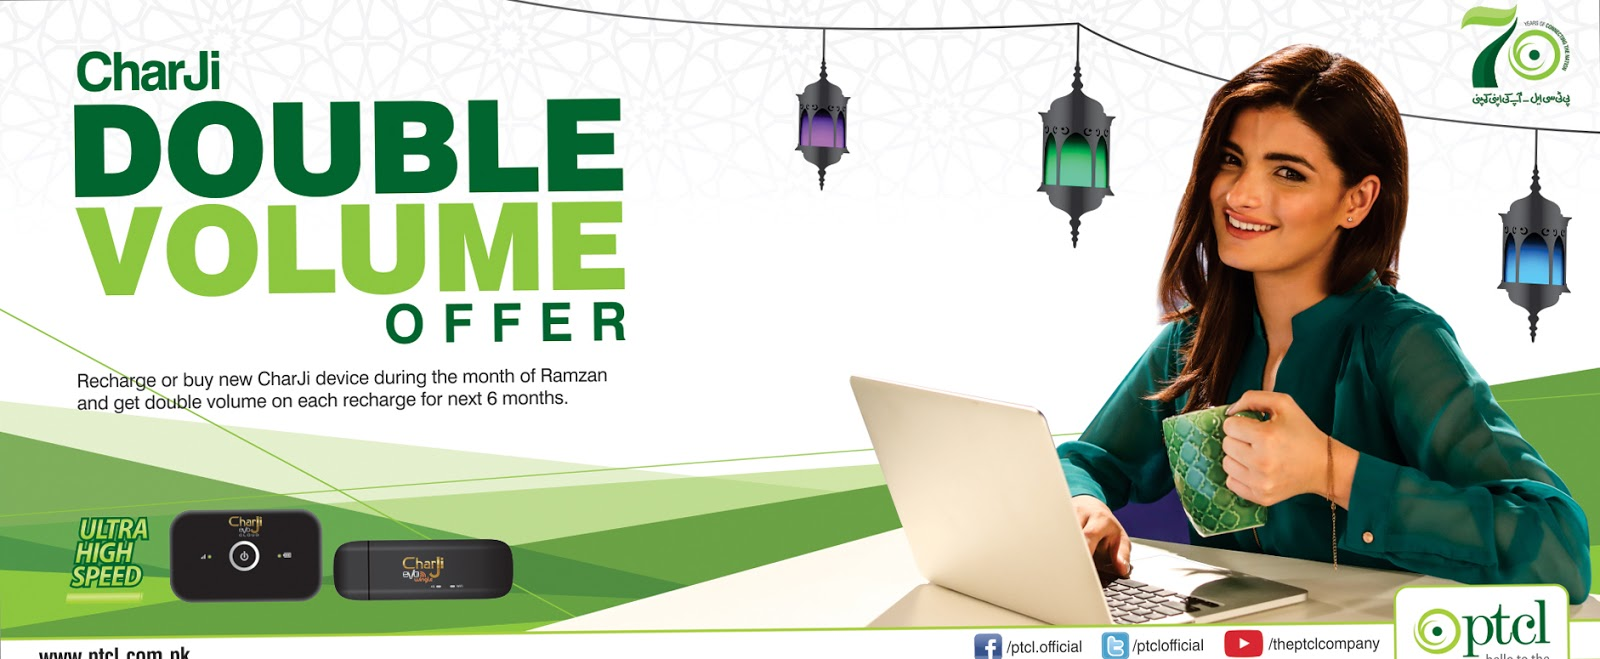 PTCL Double Volume CharJi Offer